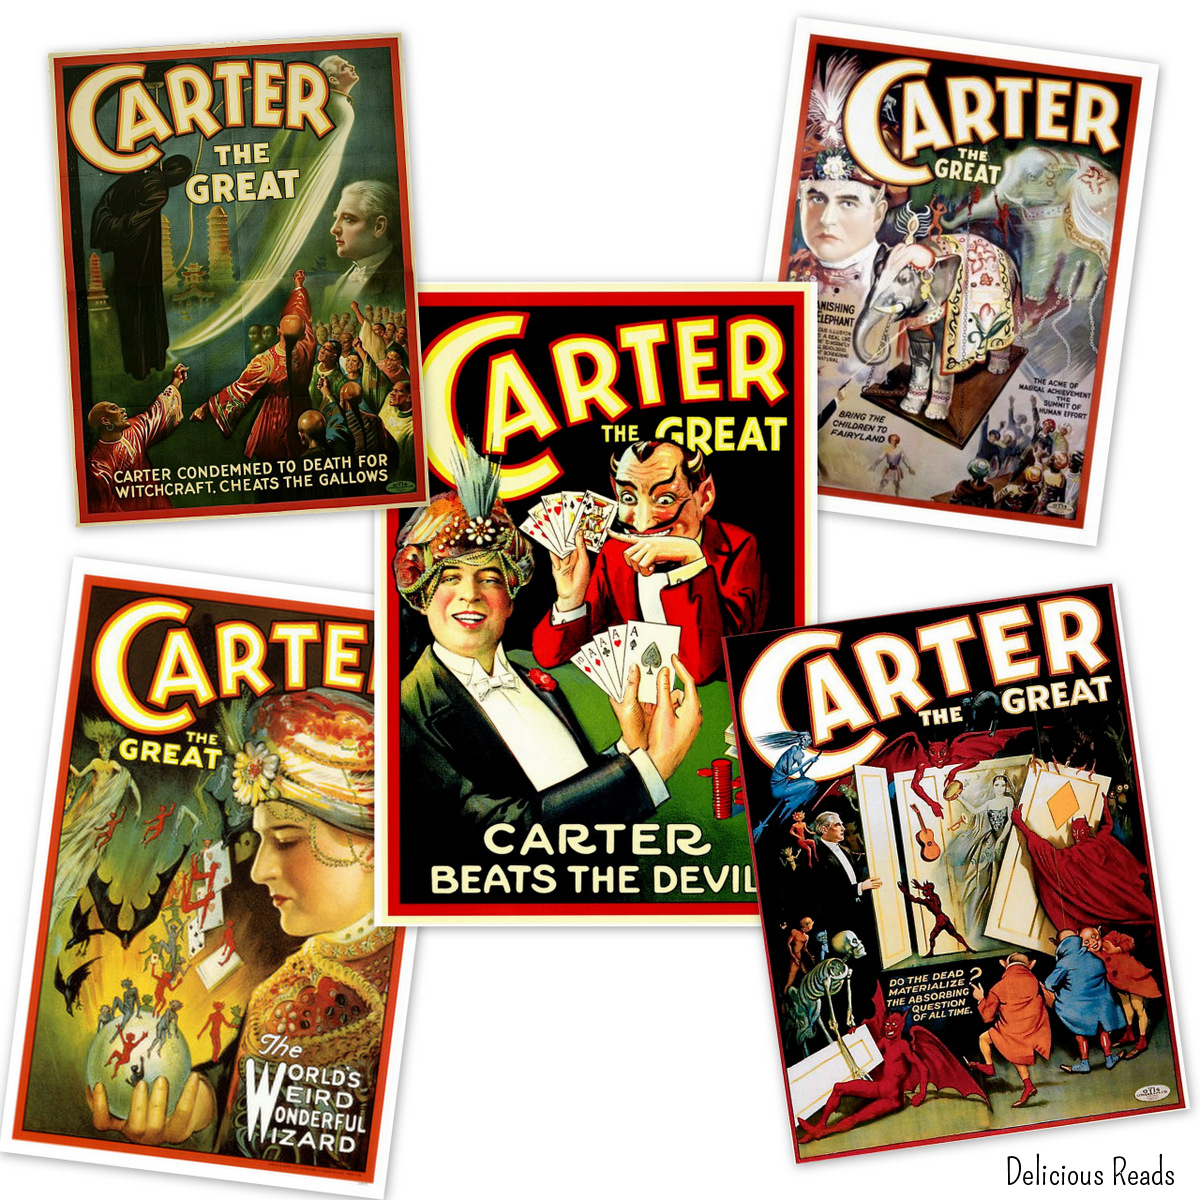 Carter Beats the Devil posters